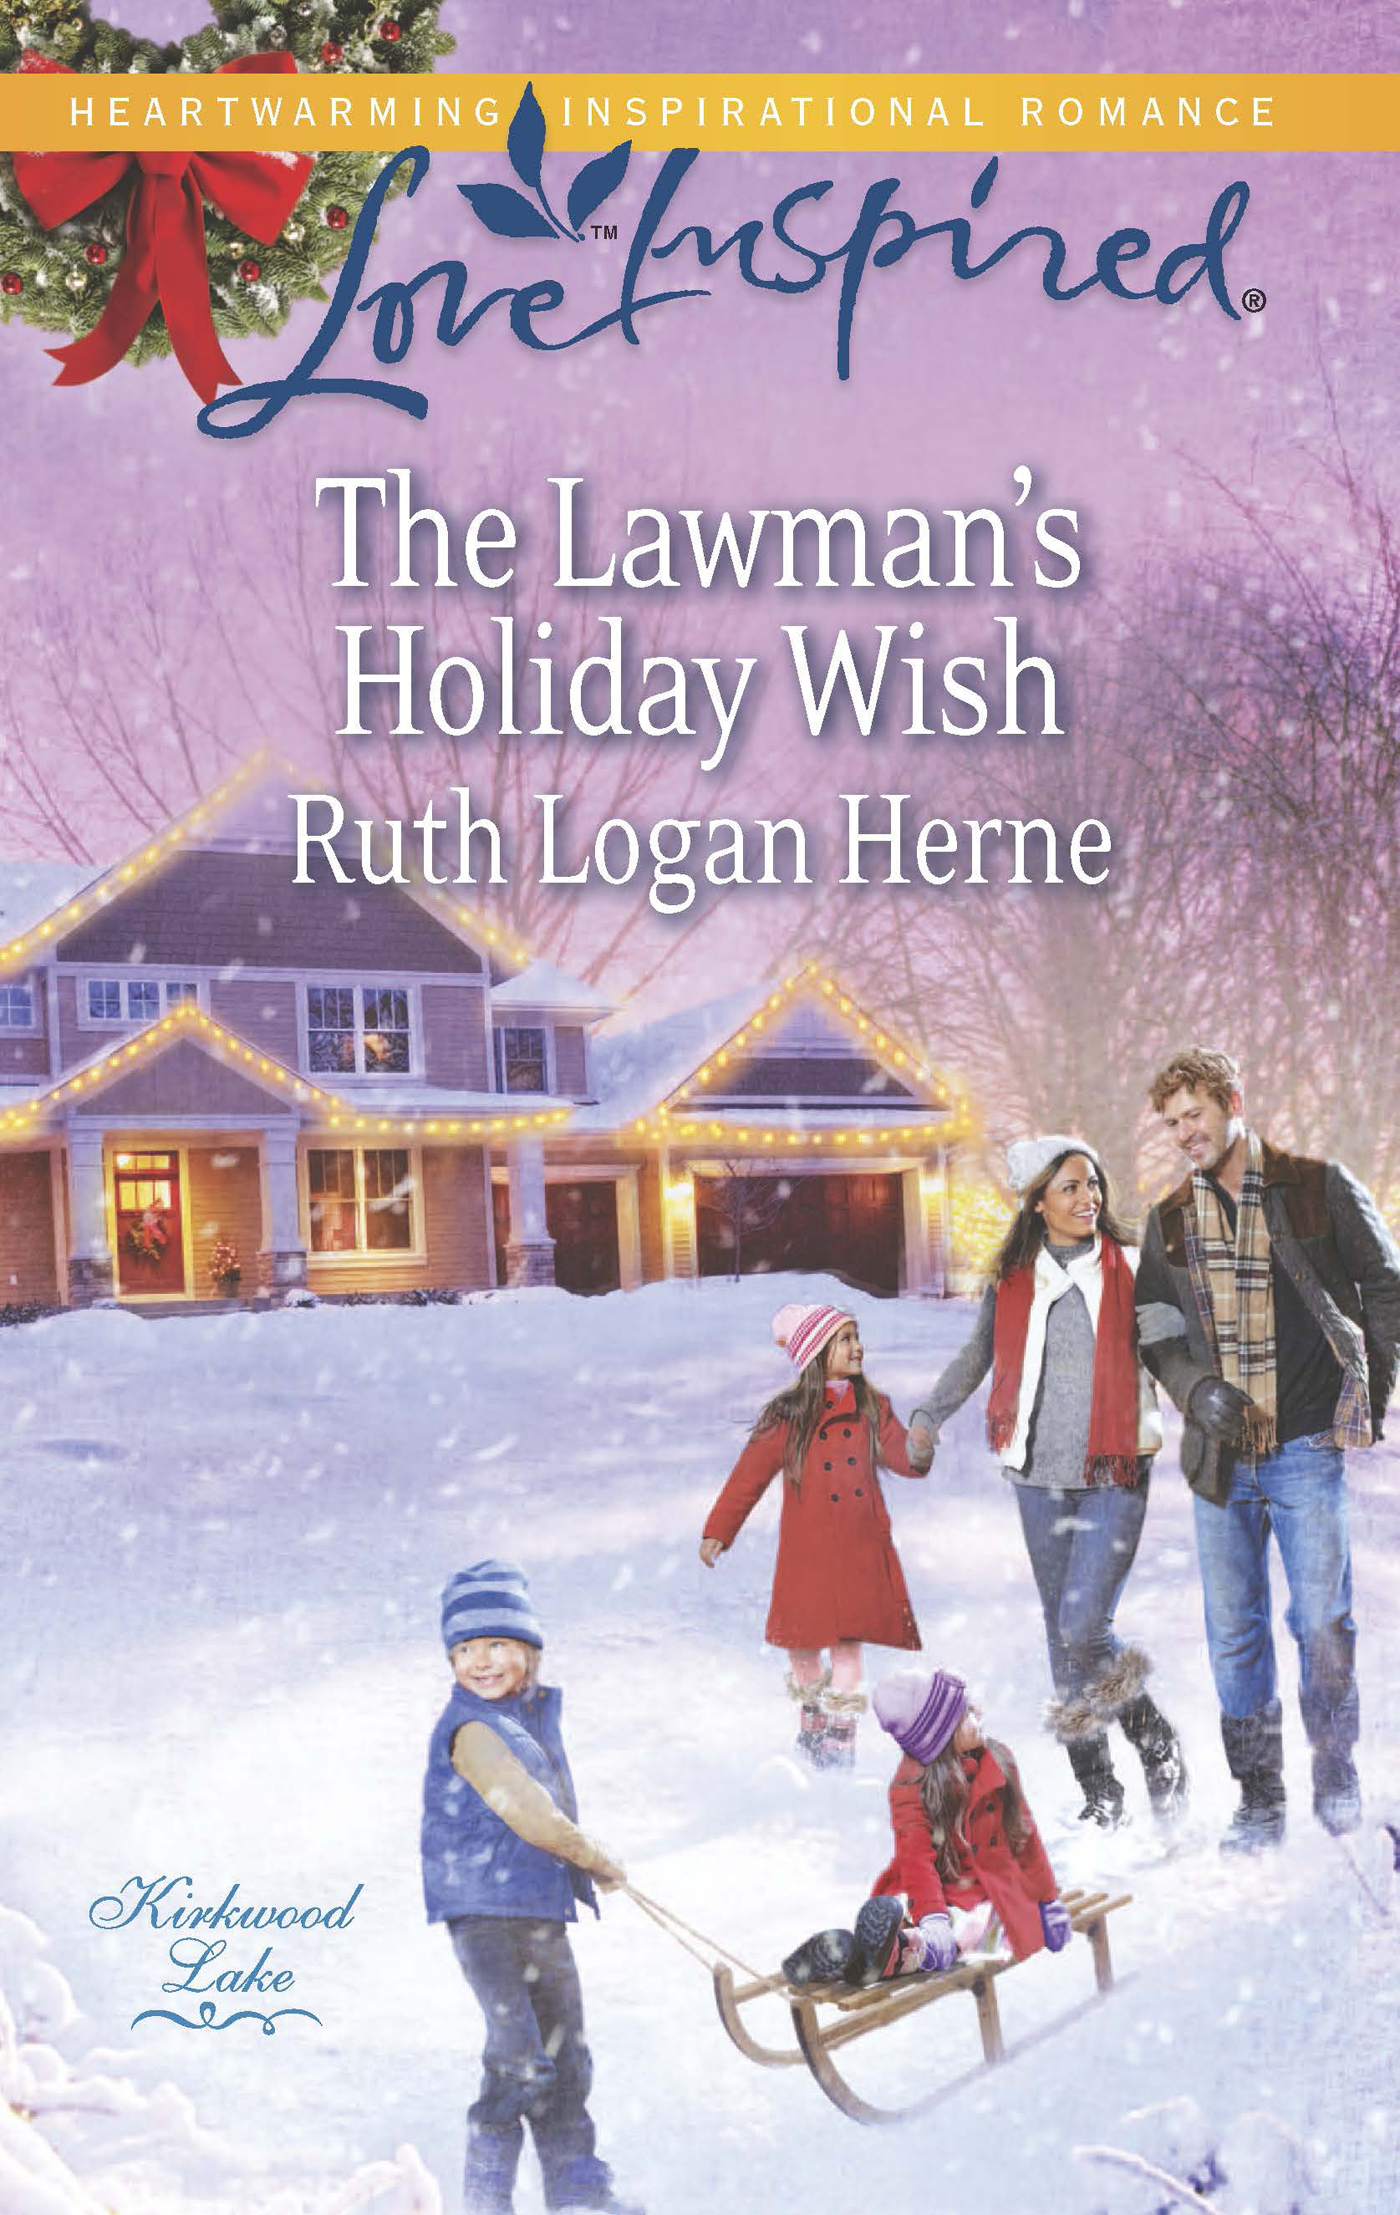 The Lawman's Holiday Wish (Mills & Boon Love Inspired) (Kirkwood Lake - Book 3)